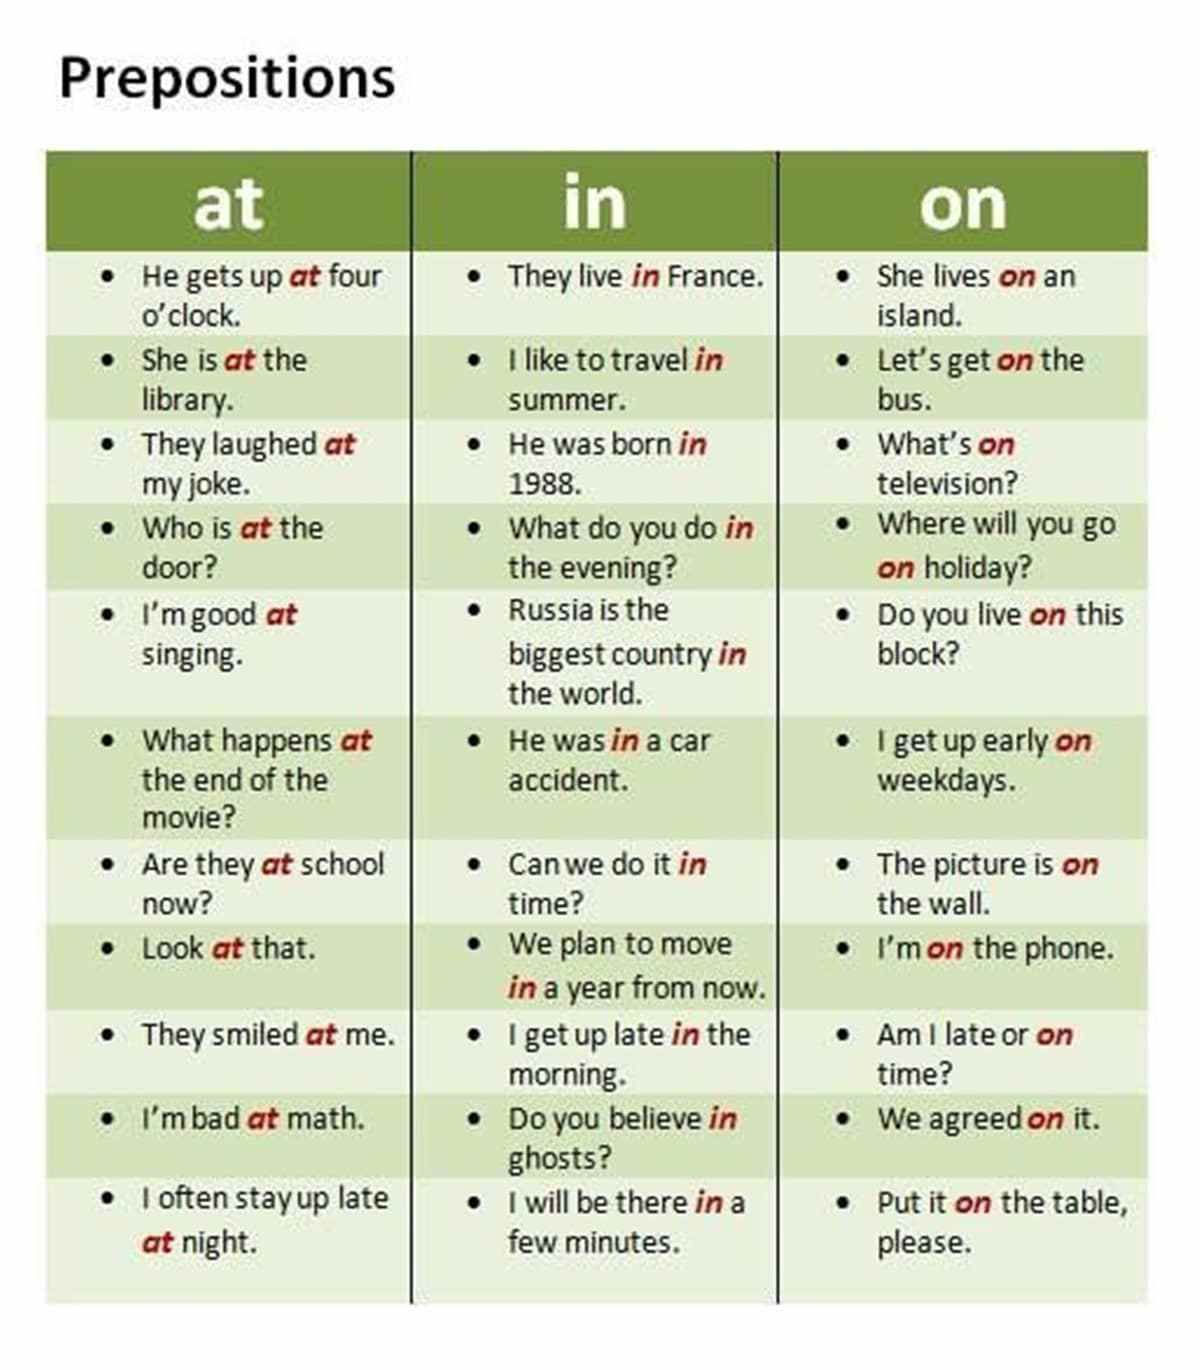 At In And On Prepositions Of Time And Place With Images